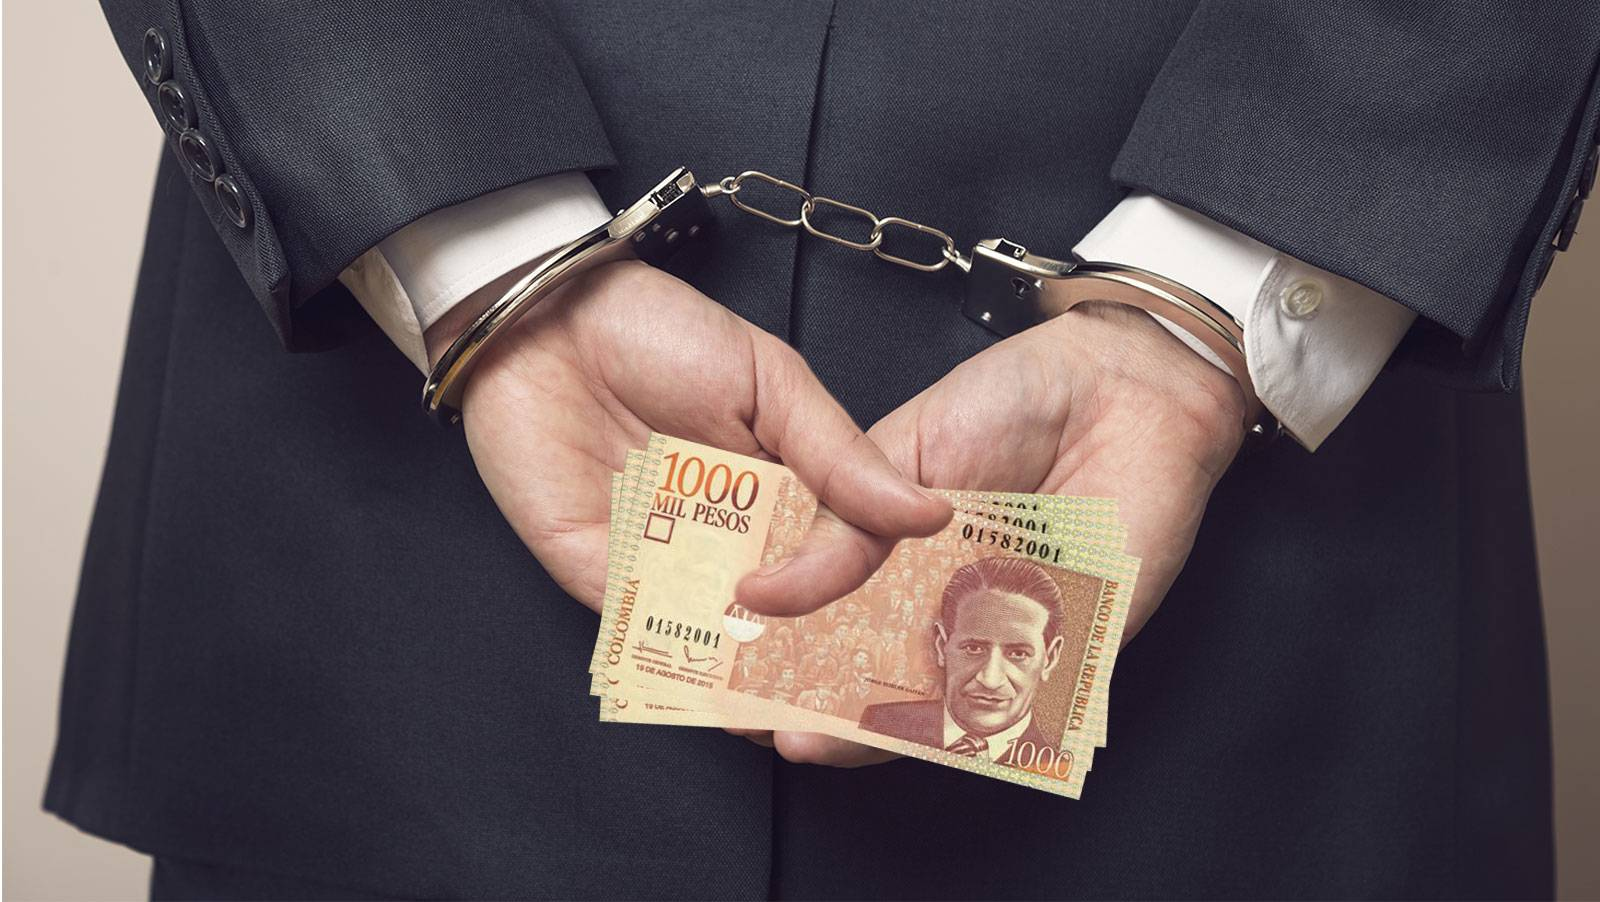 Colombia police arrest gambling regulators on corruption charges